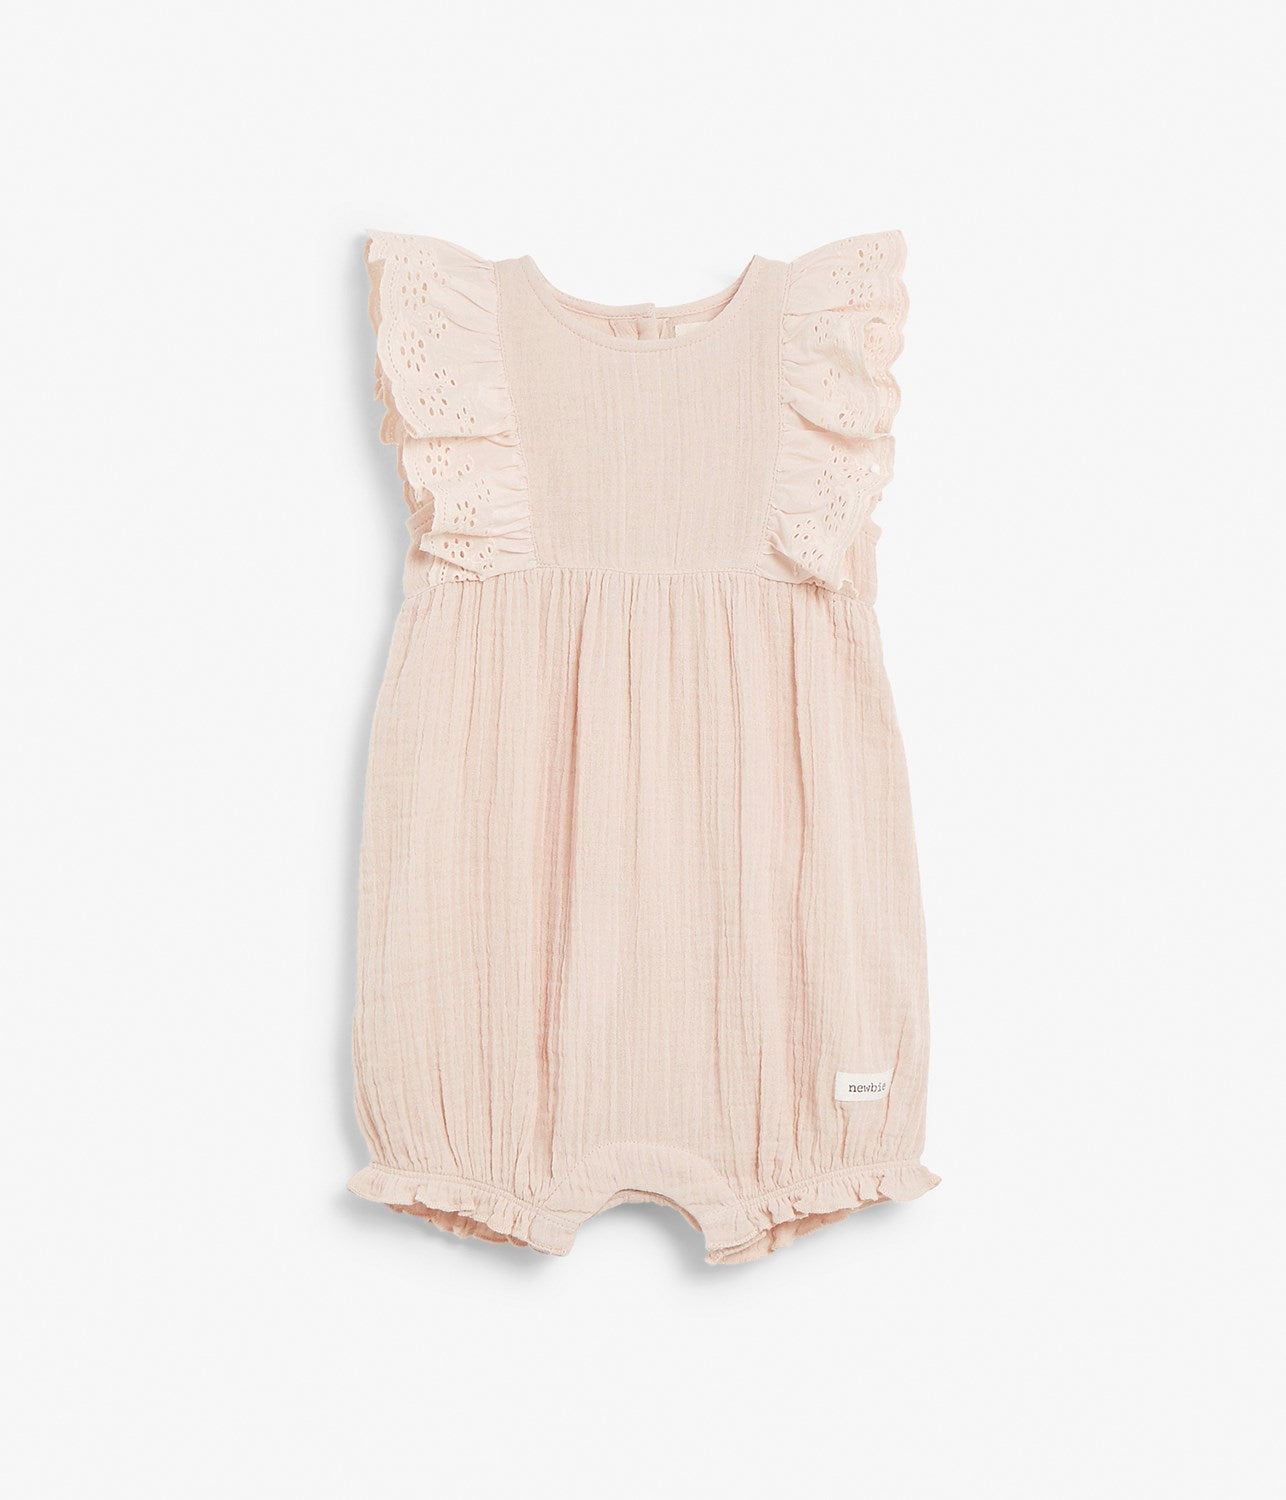 Baby jumpsuit with frills